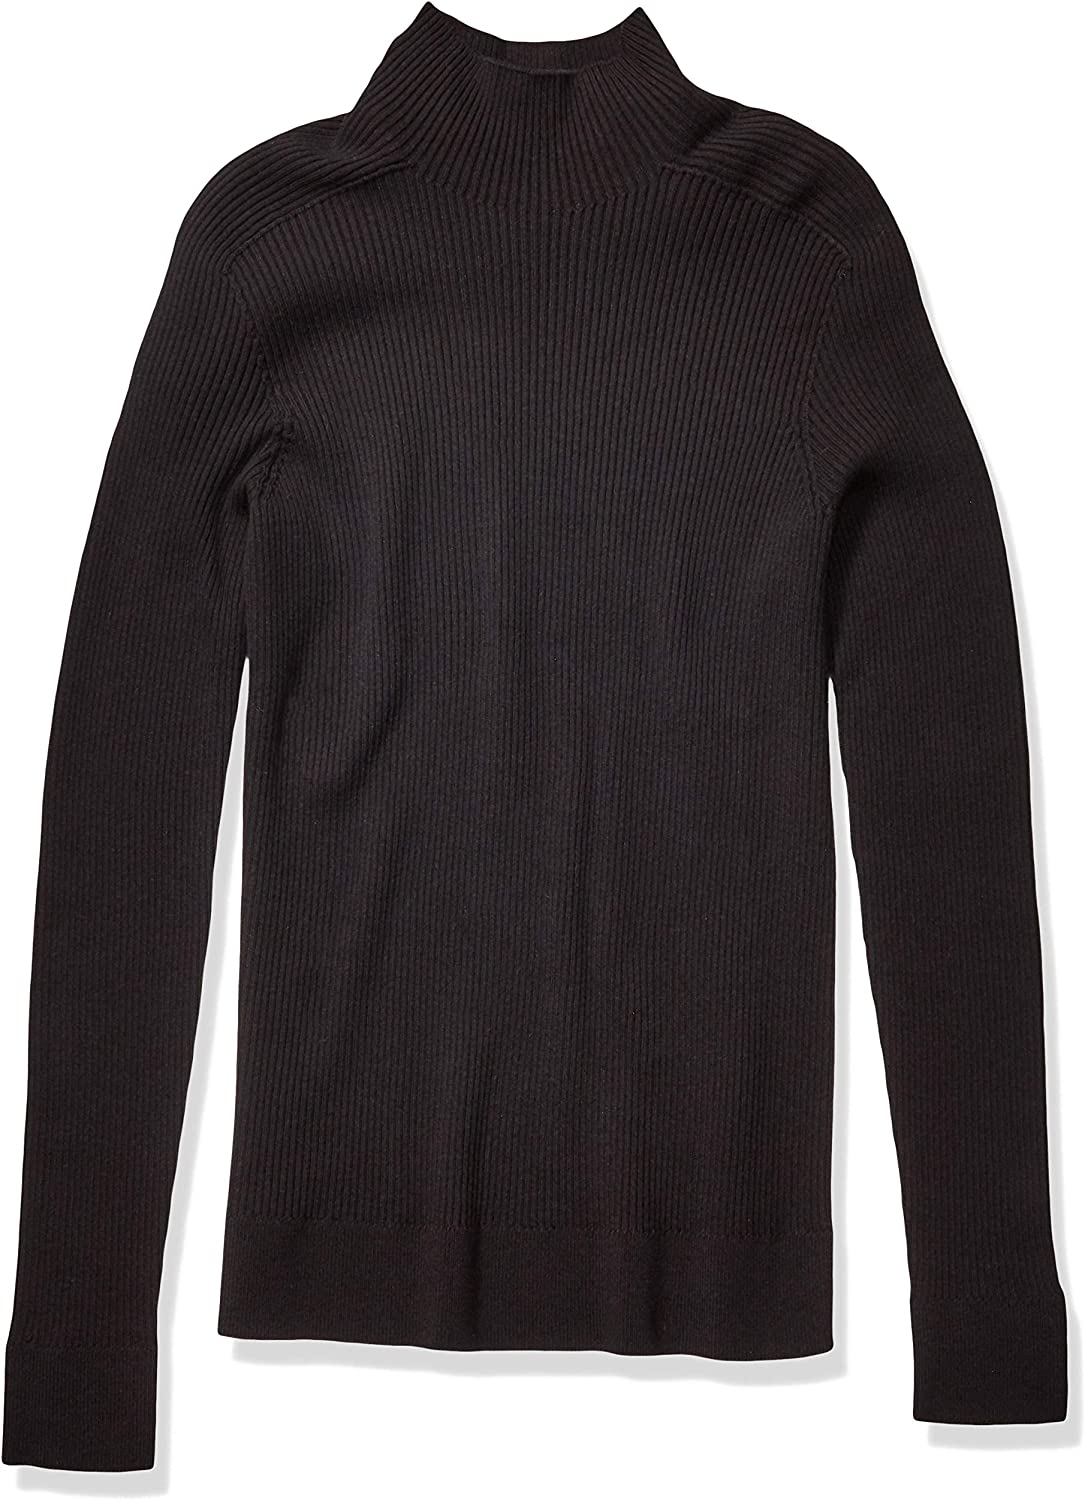 The Knitwear Lab Men's 3D Turtleneck Ribbed Sweater